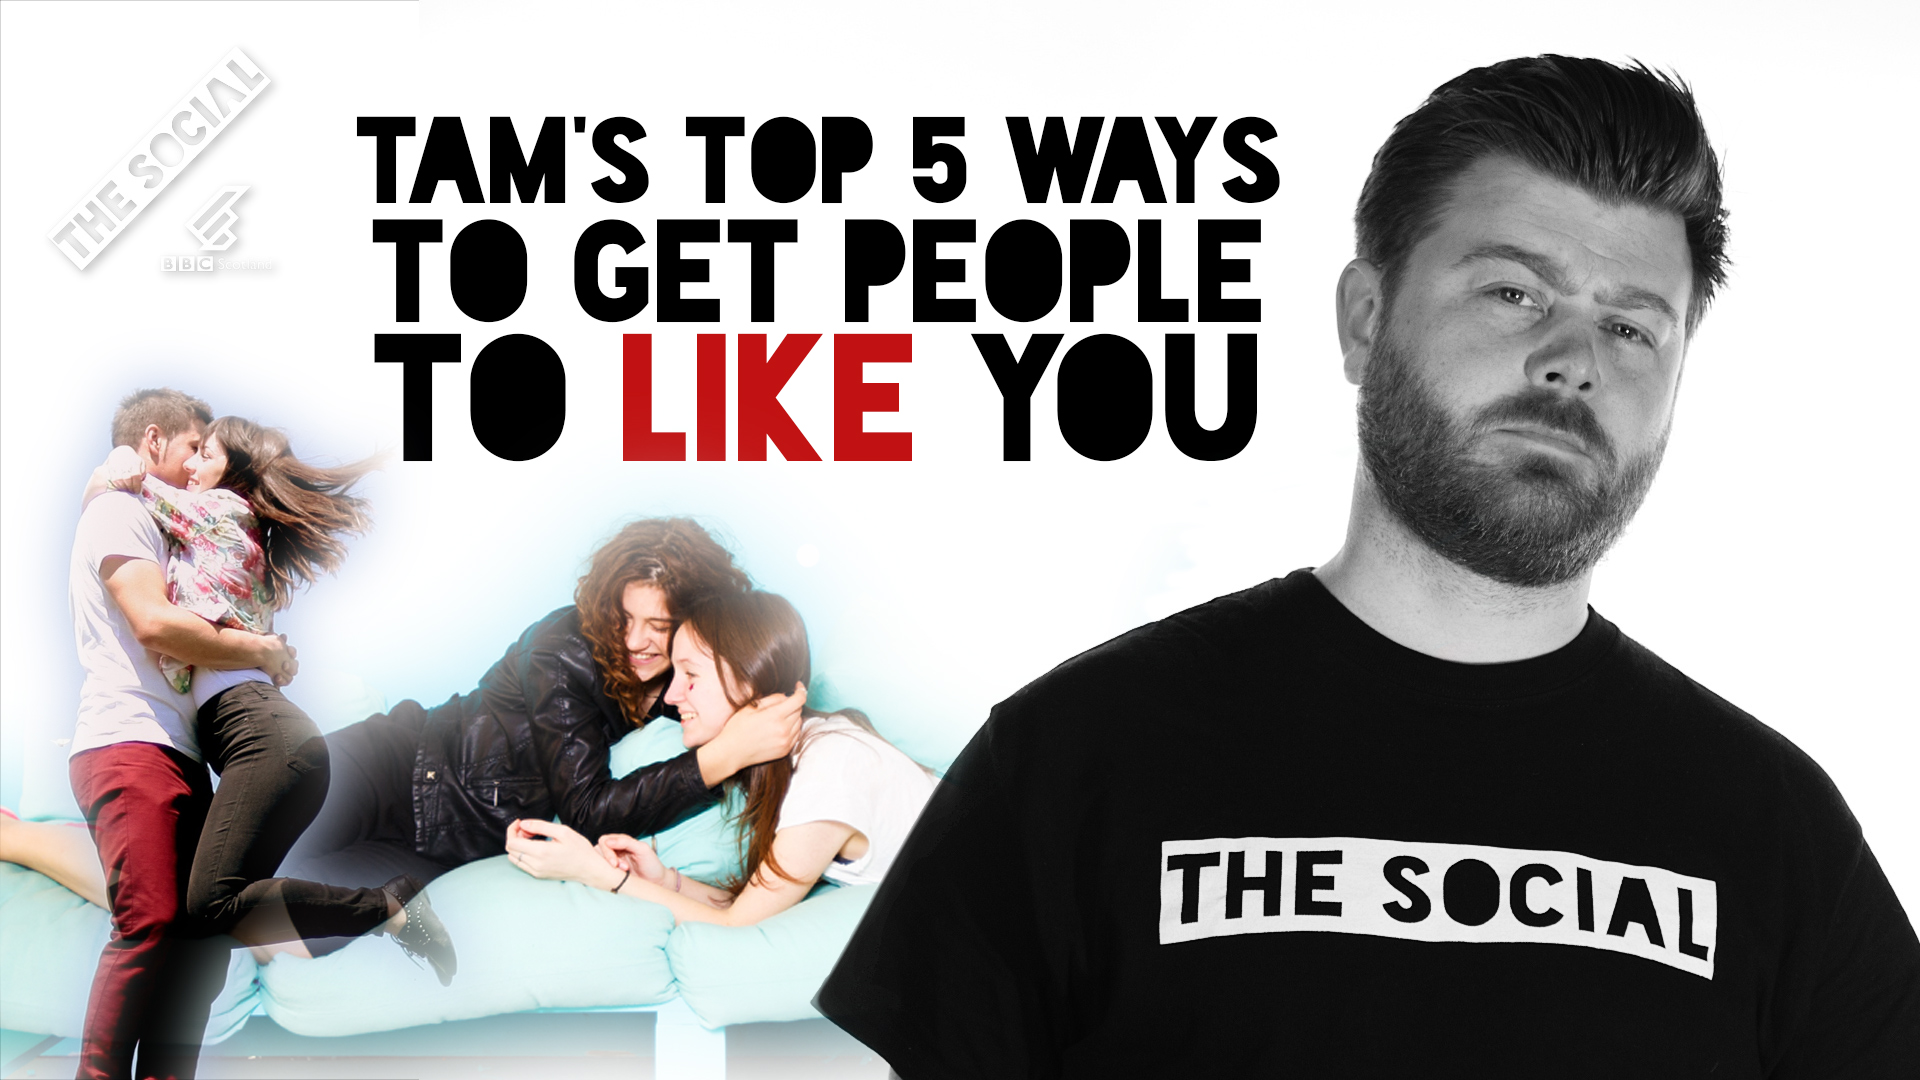 Top 5 ways to get the guy behind you